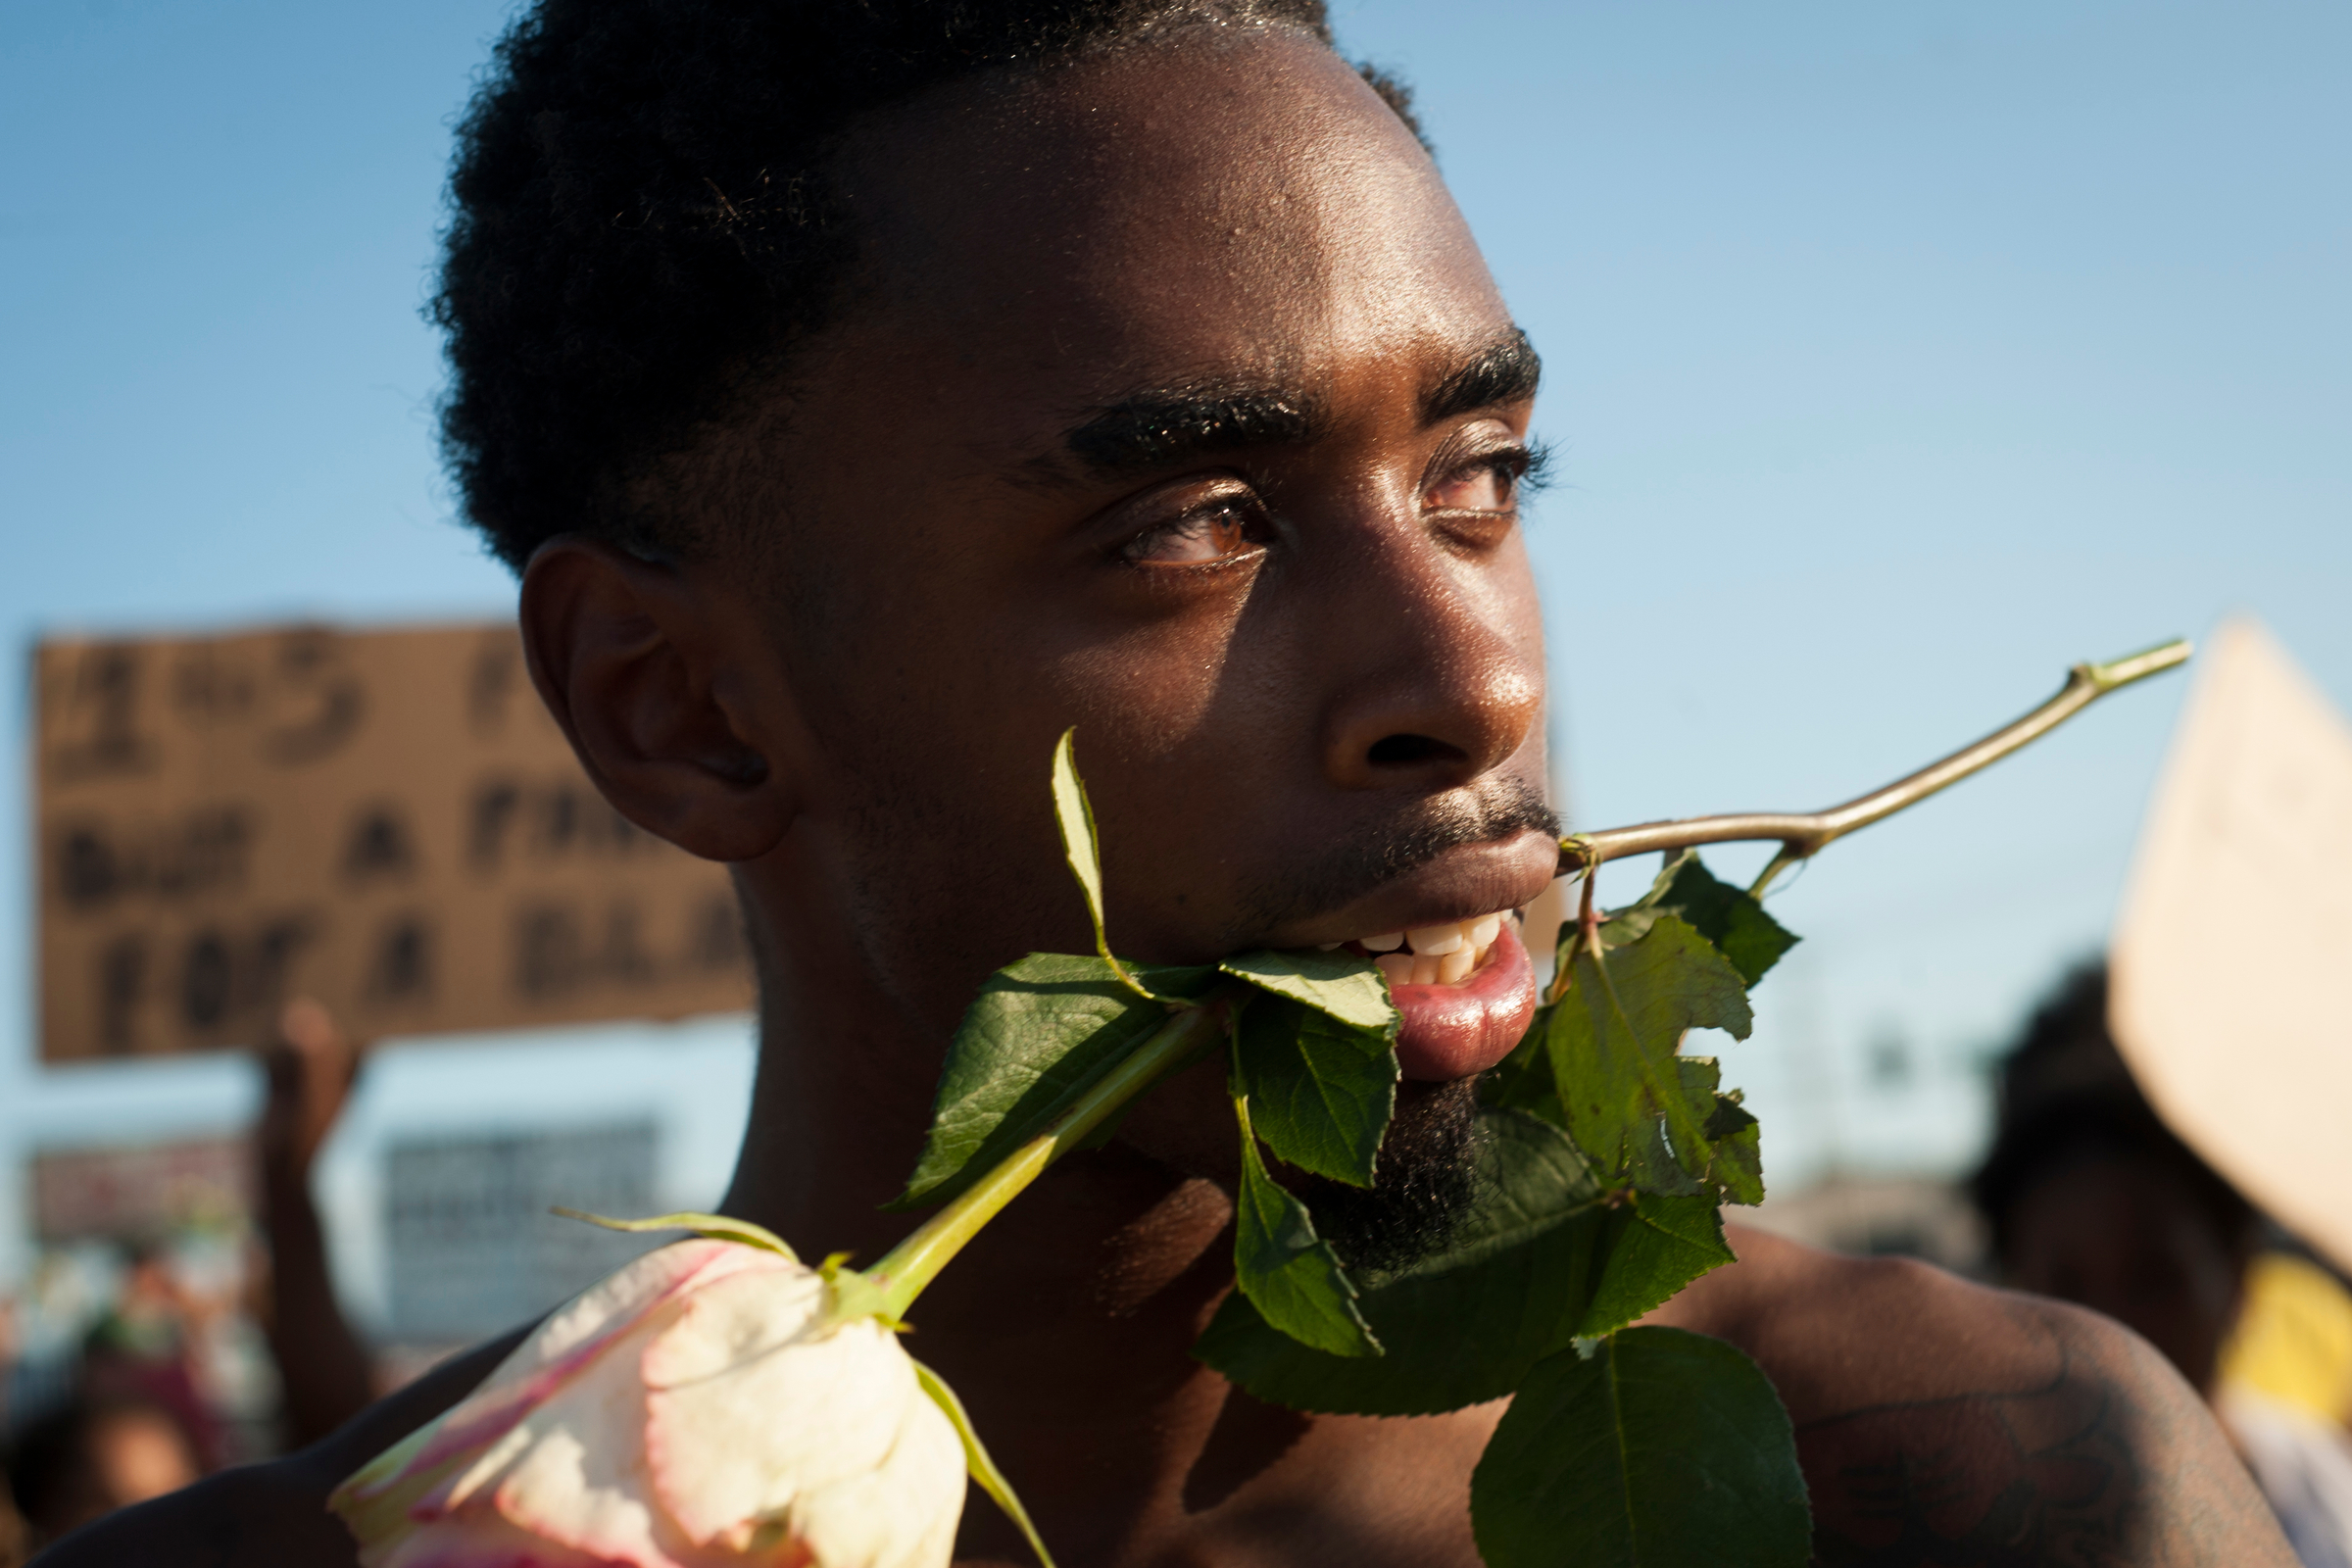 A protestor, who requested to remain unnamed, marches down W. Florissant Ave. in Ferguson, Mo. in one of many early evening protests. Protestors shared roses, some even sharing them with police officers as a peace offering of sorts.